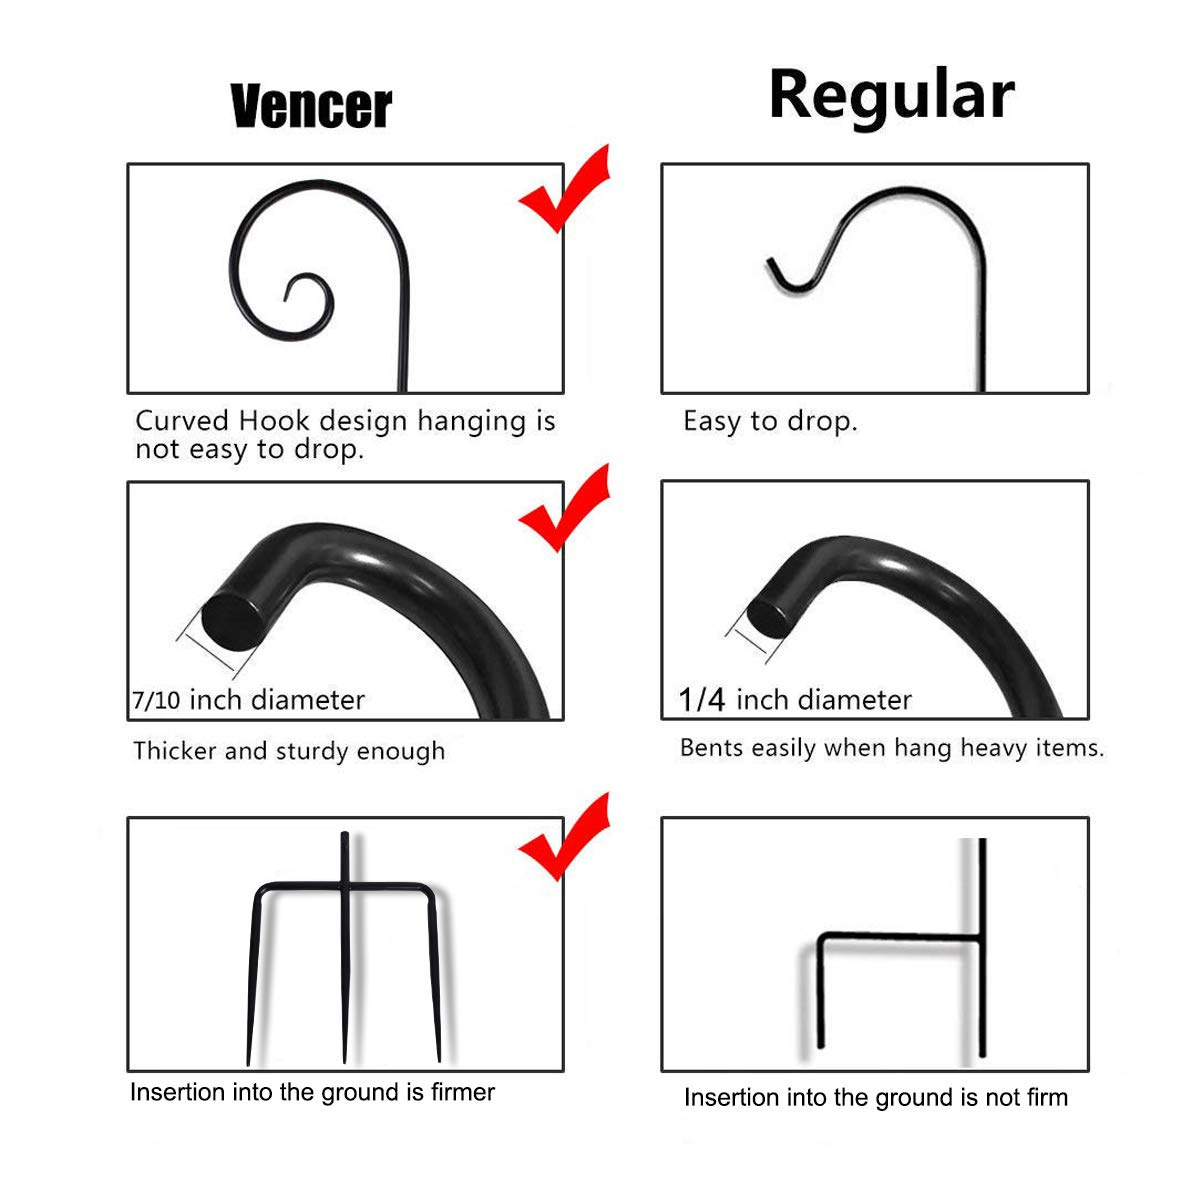 Vencer Set of 2 Double Shepherd Hook 94 Inch Heavy Duty 7/10 in Thick Rust Resistant Premium Metal Hook for Weddings Hanging Plant Baskets Solar Lights Christmas Lights Lanterns Bird Feeders,VHH-002 by Vencer (Image #3)